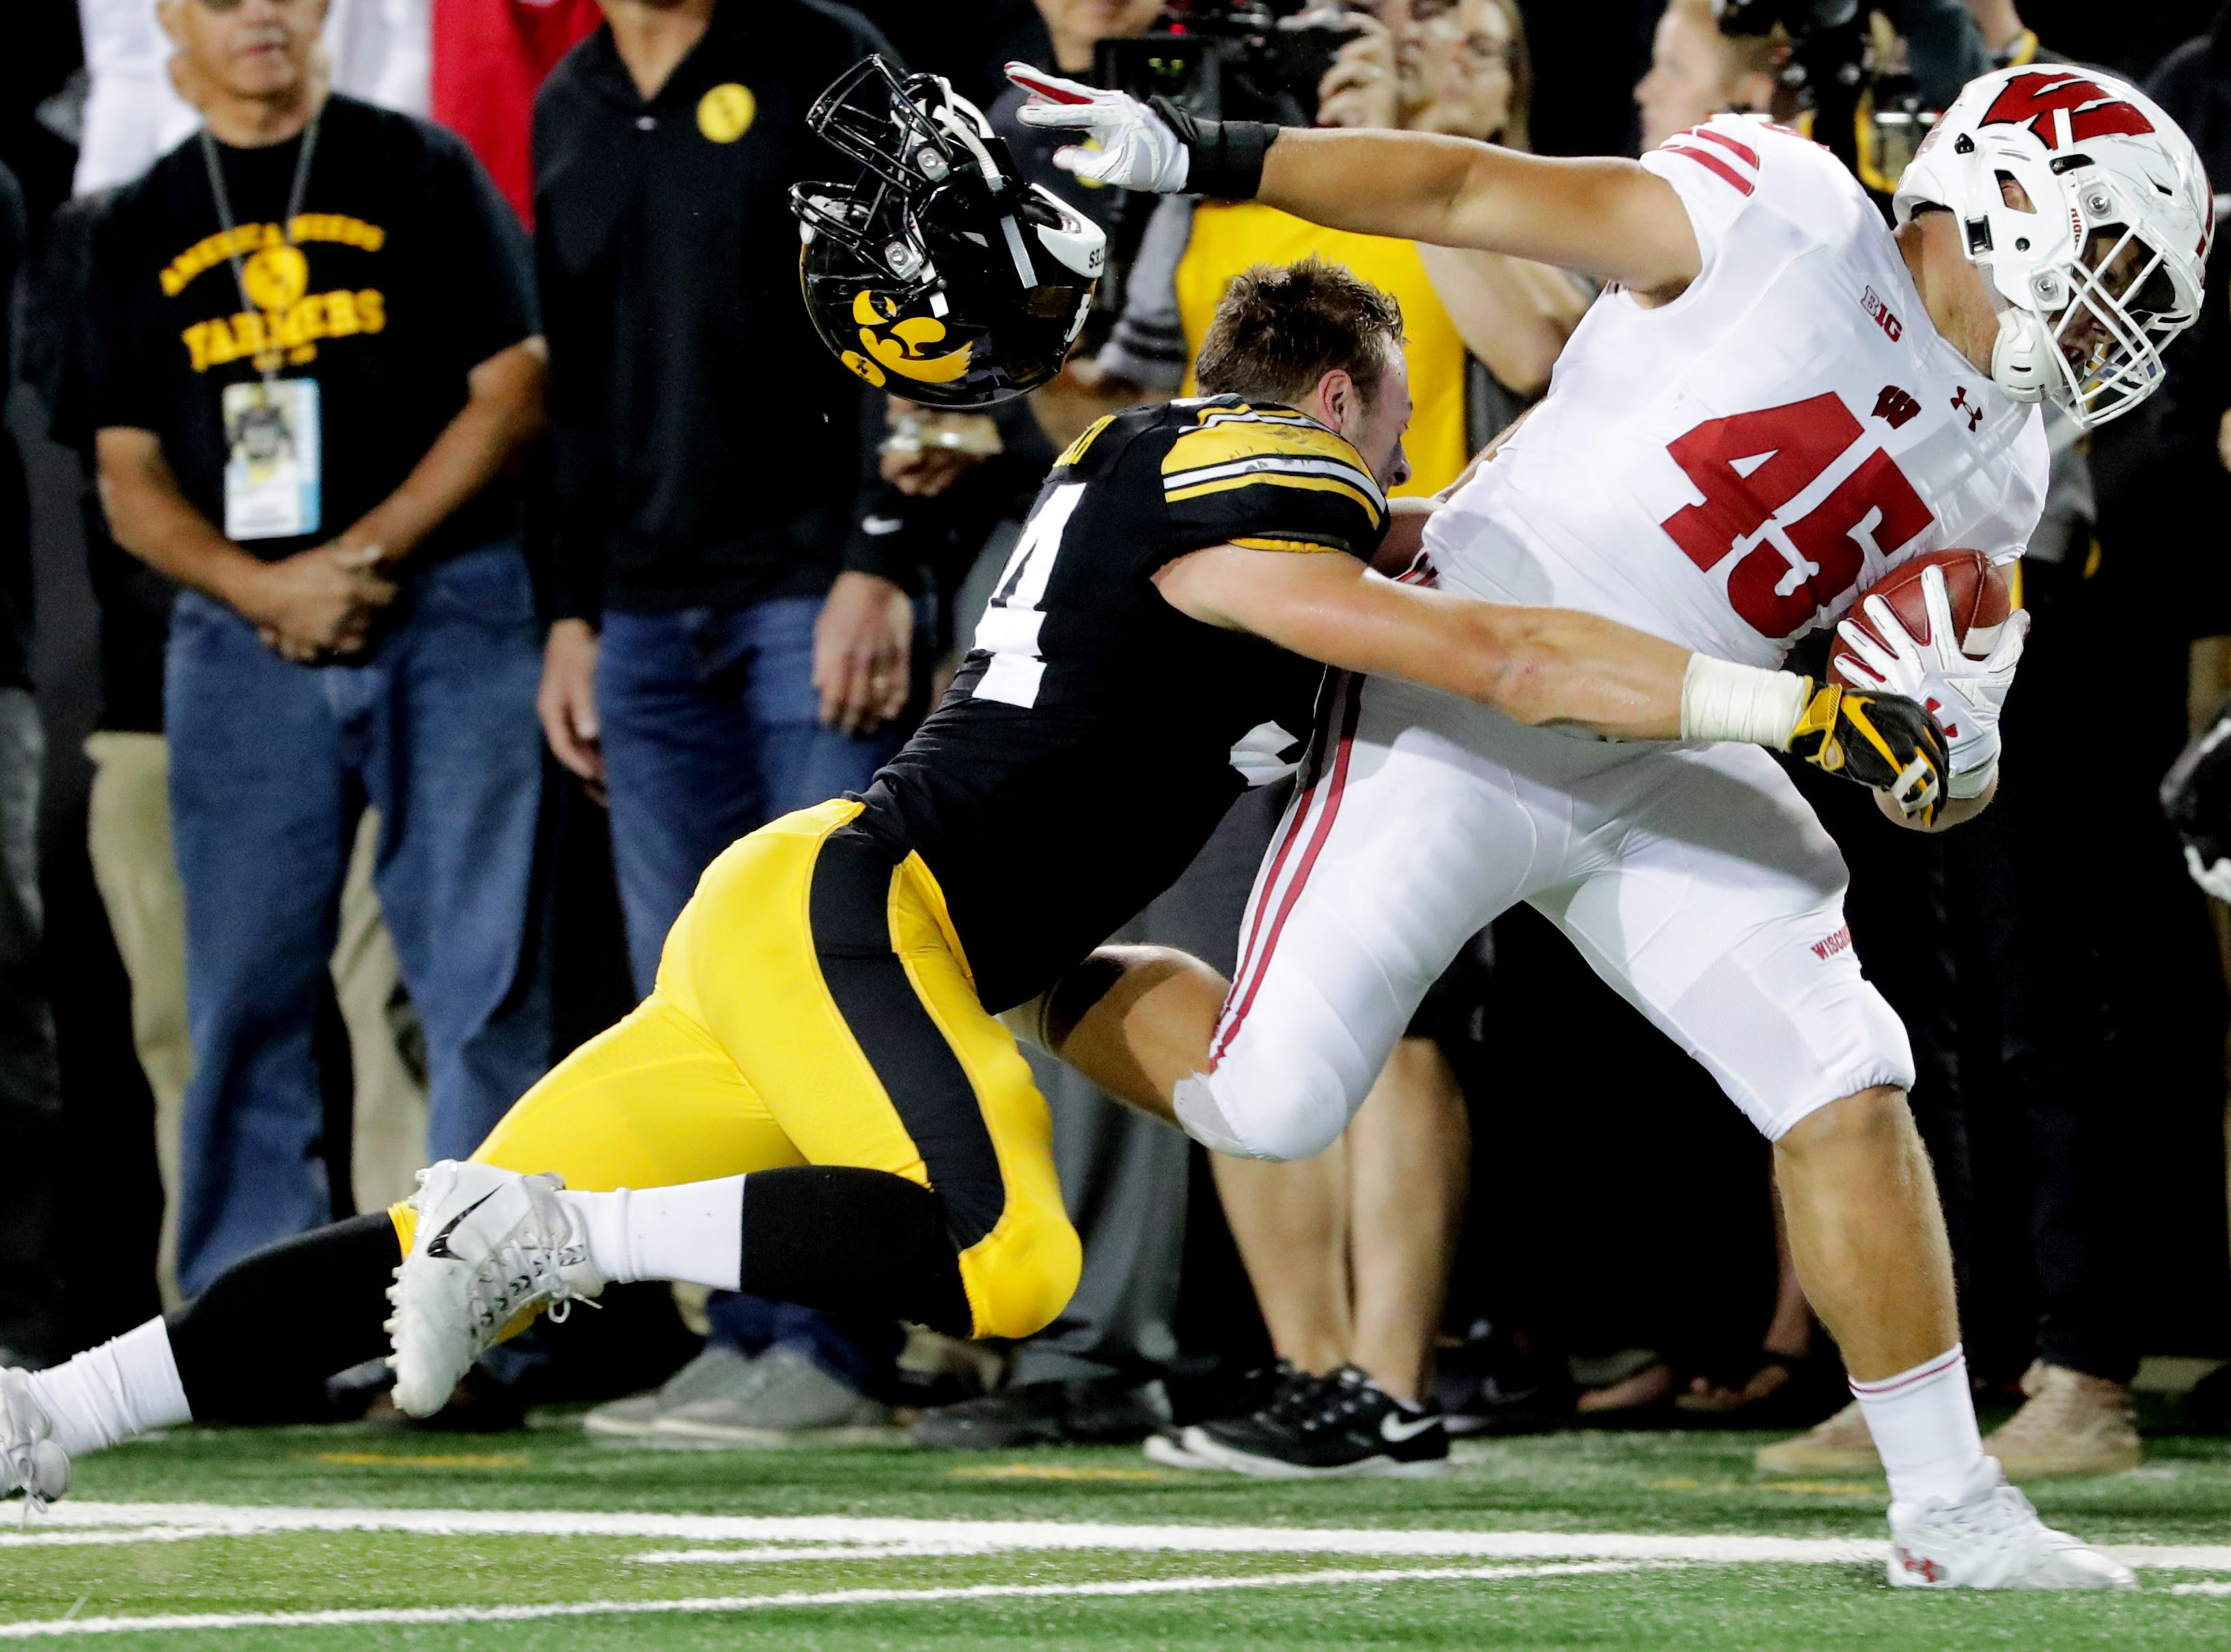 Wisconsin fullback Alec Ingold (45) picks up 33 yards on a run while stiff-arming Iowa linebacker Kristian Welch (34) during the second quarter  at Kinnick Stadium.